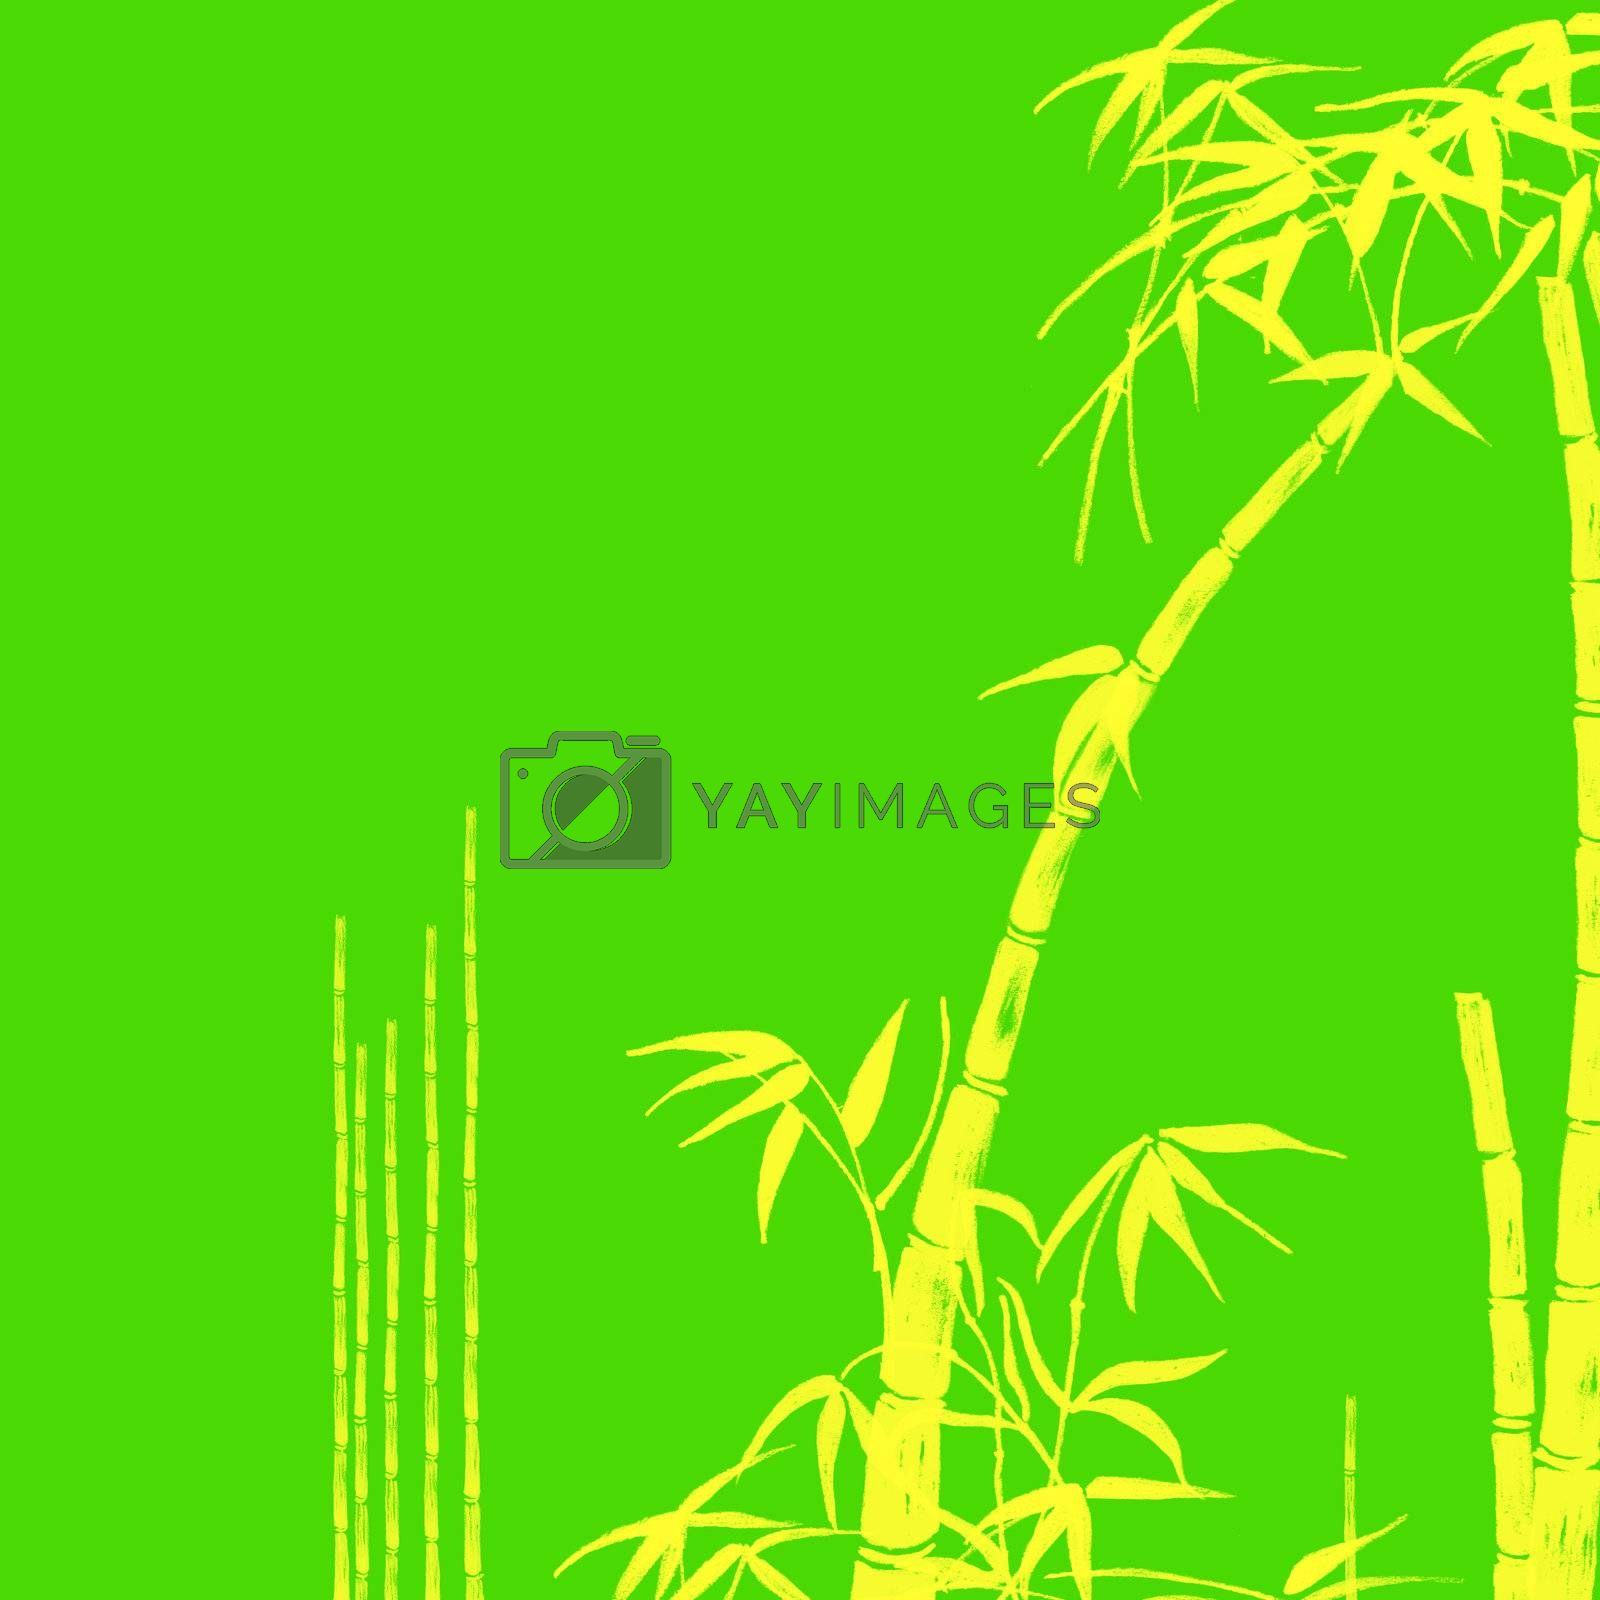 Yellow Bamboo Tropical Design Illustration on Green Background